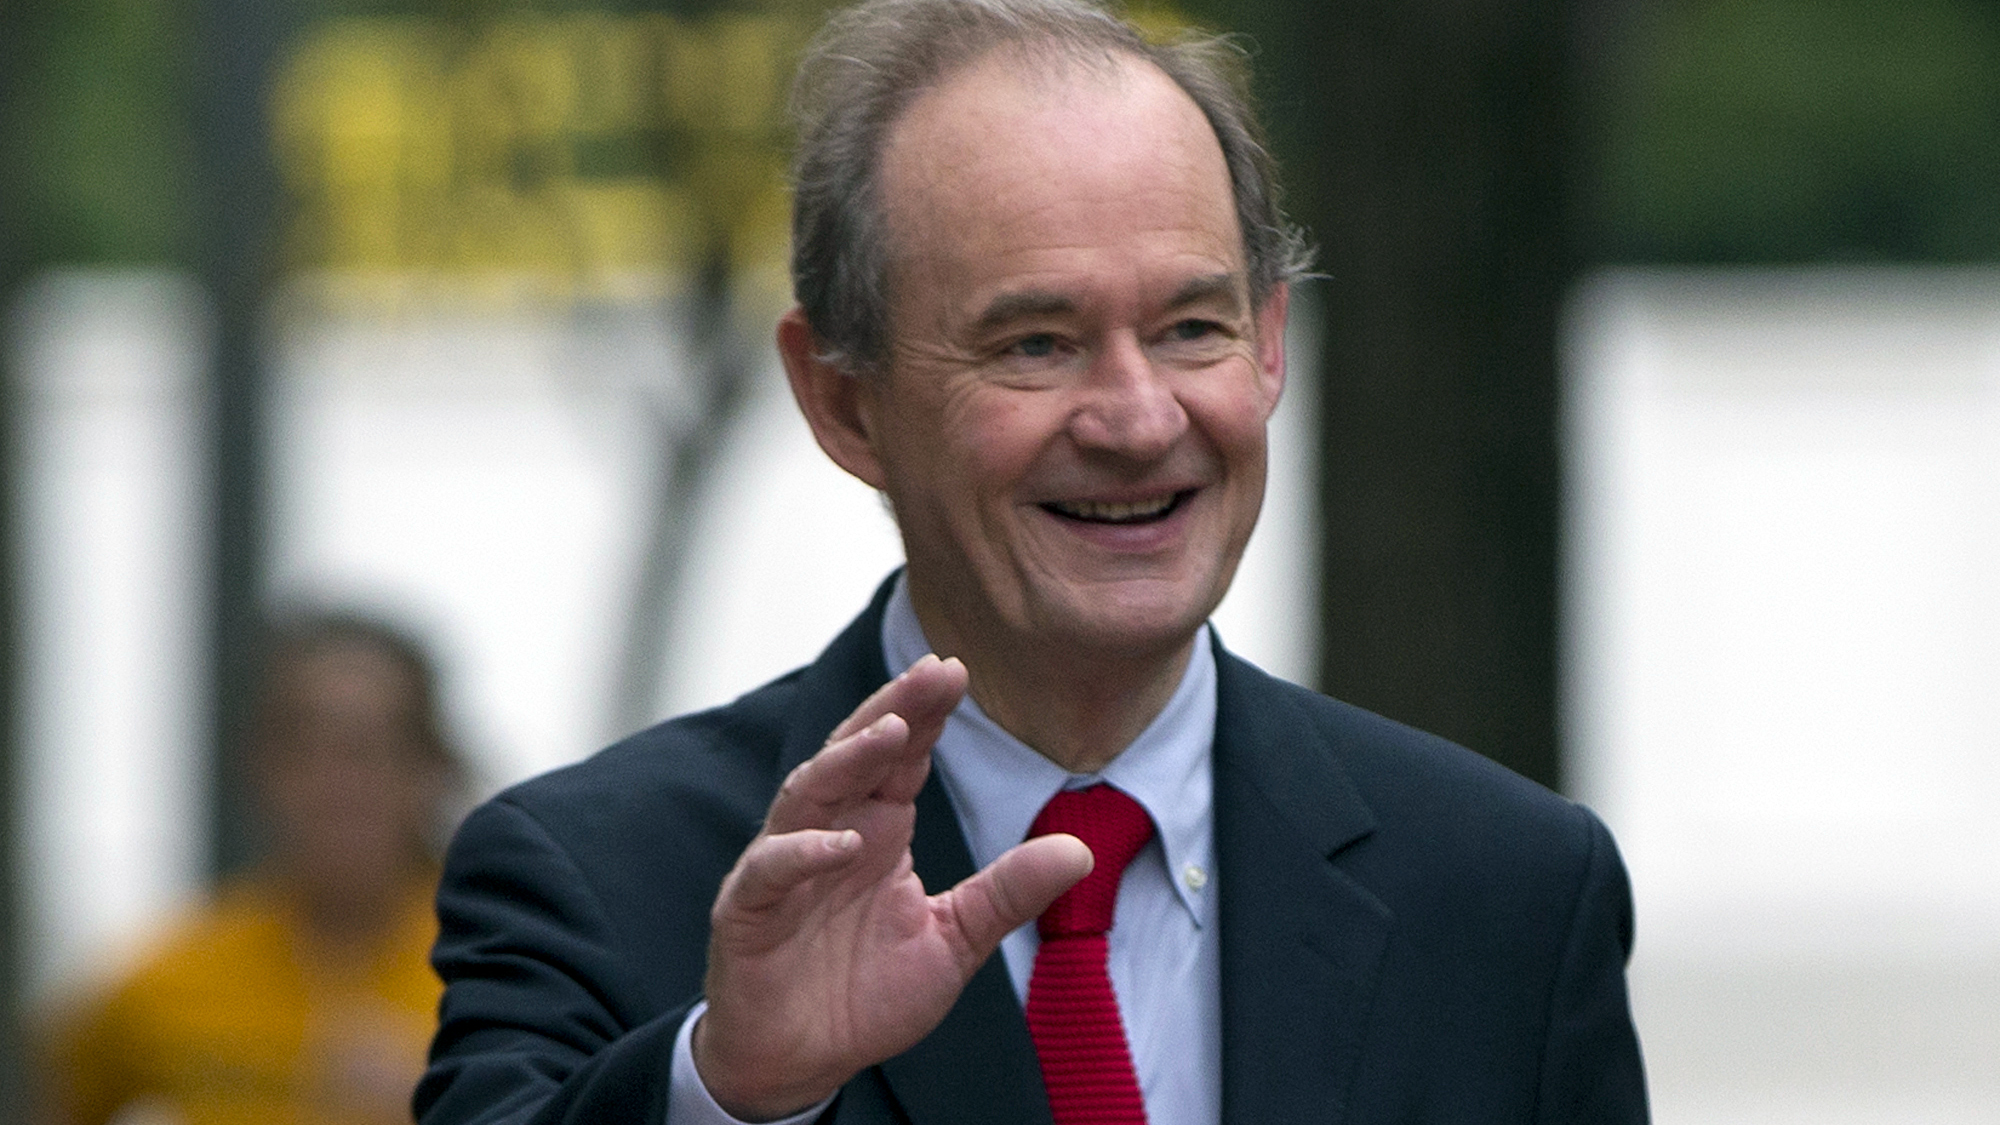 """FILE - In this Oct. 10, 2014 file photo, attorney David Boies is seen in Washington. Lawyers representing Sony Pictures Entertainment are threatening news organizations not to publish details of company files leaked by hackers in recent days, following one of the largest digital breaches ever against an American company. Boies, a prominent lawyer hired by the company, demanded Sunday that Sony's """"stolen information"""" _ publicly available on the Internet by the gigabytes _ should be returned immediately because it contains privileged, private information."""